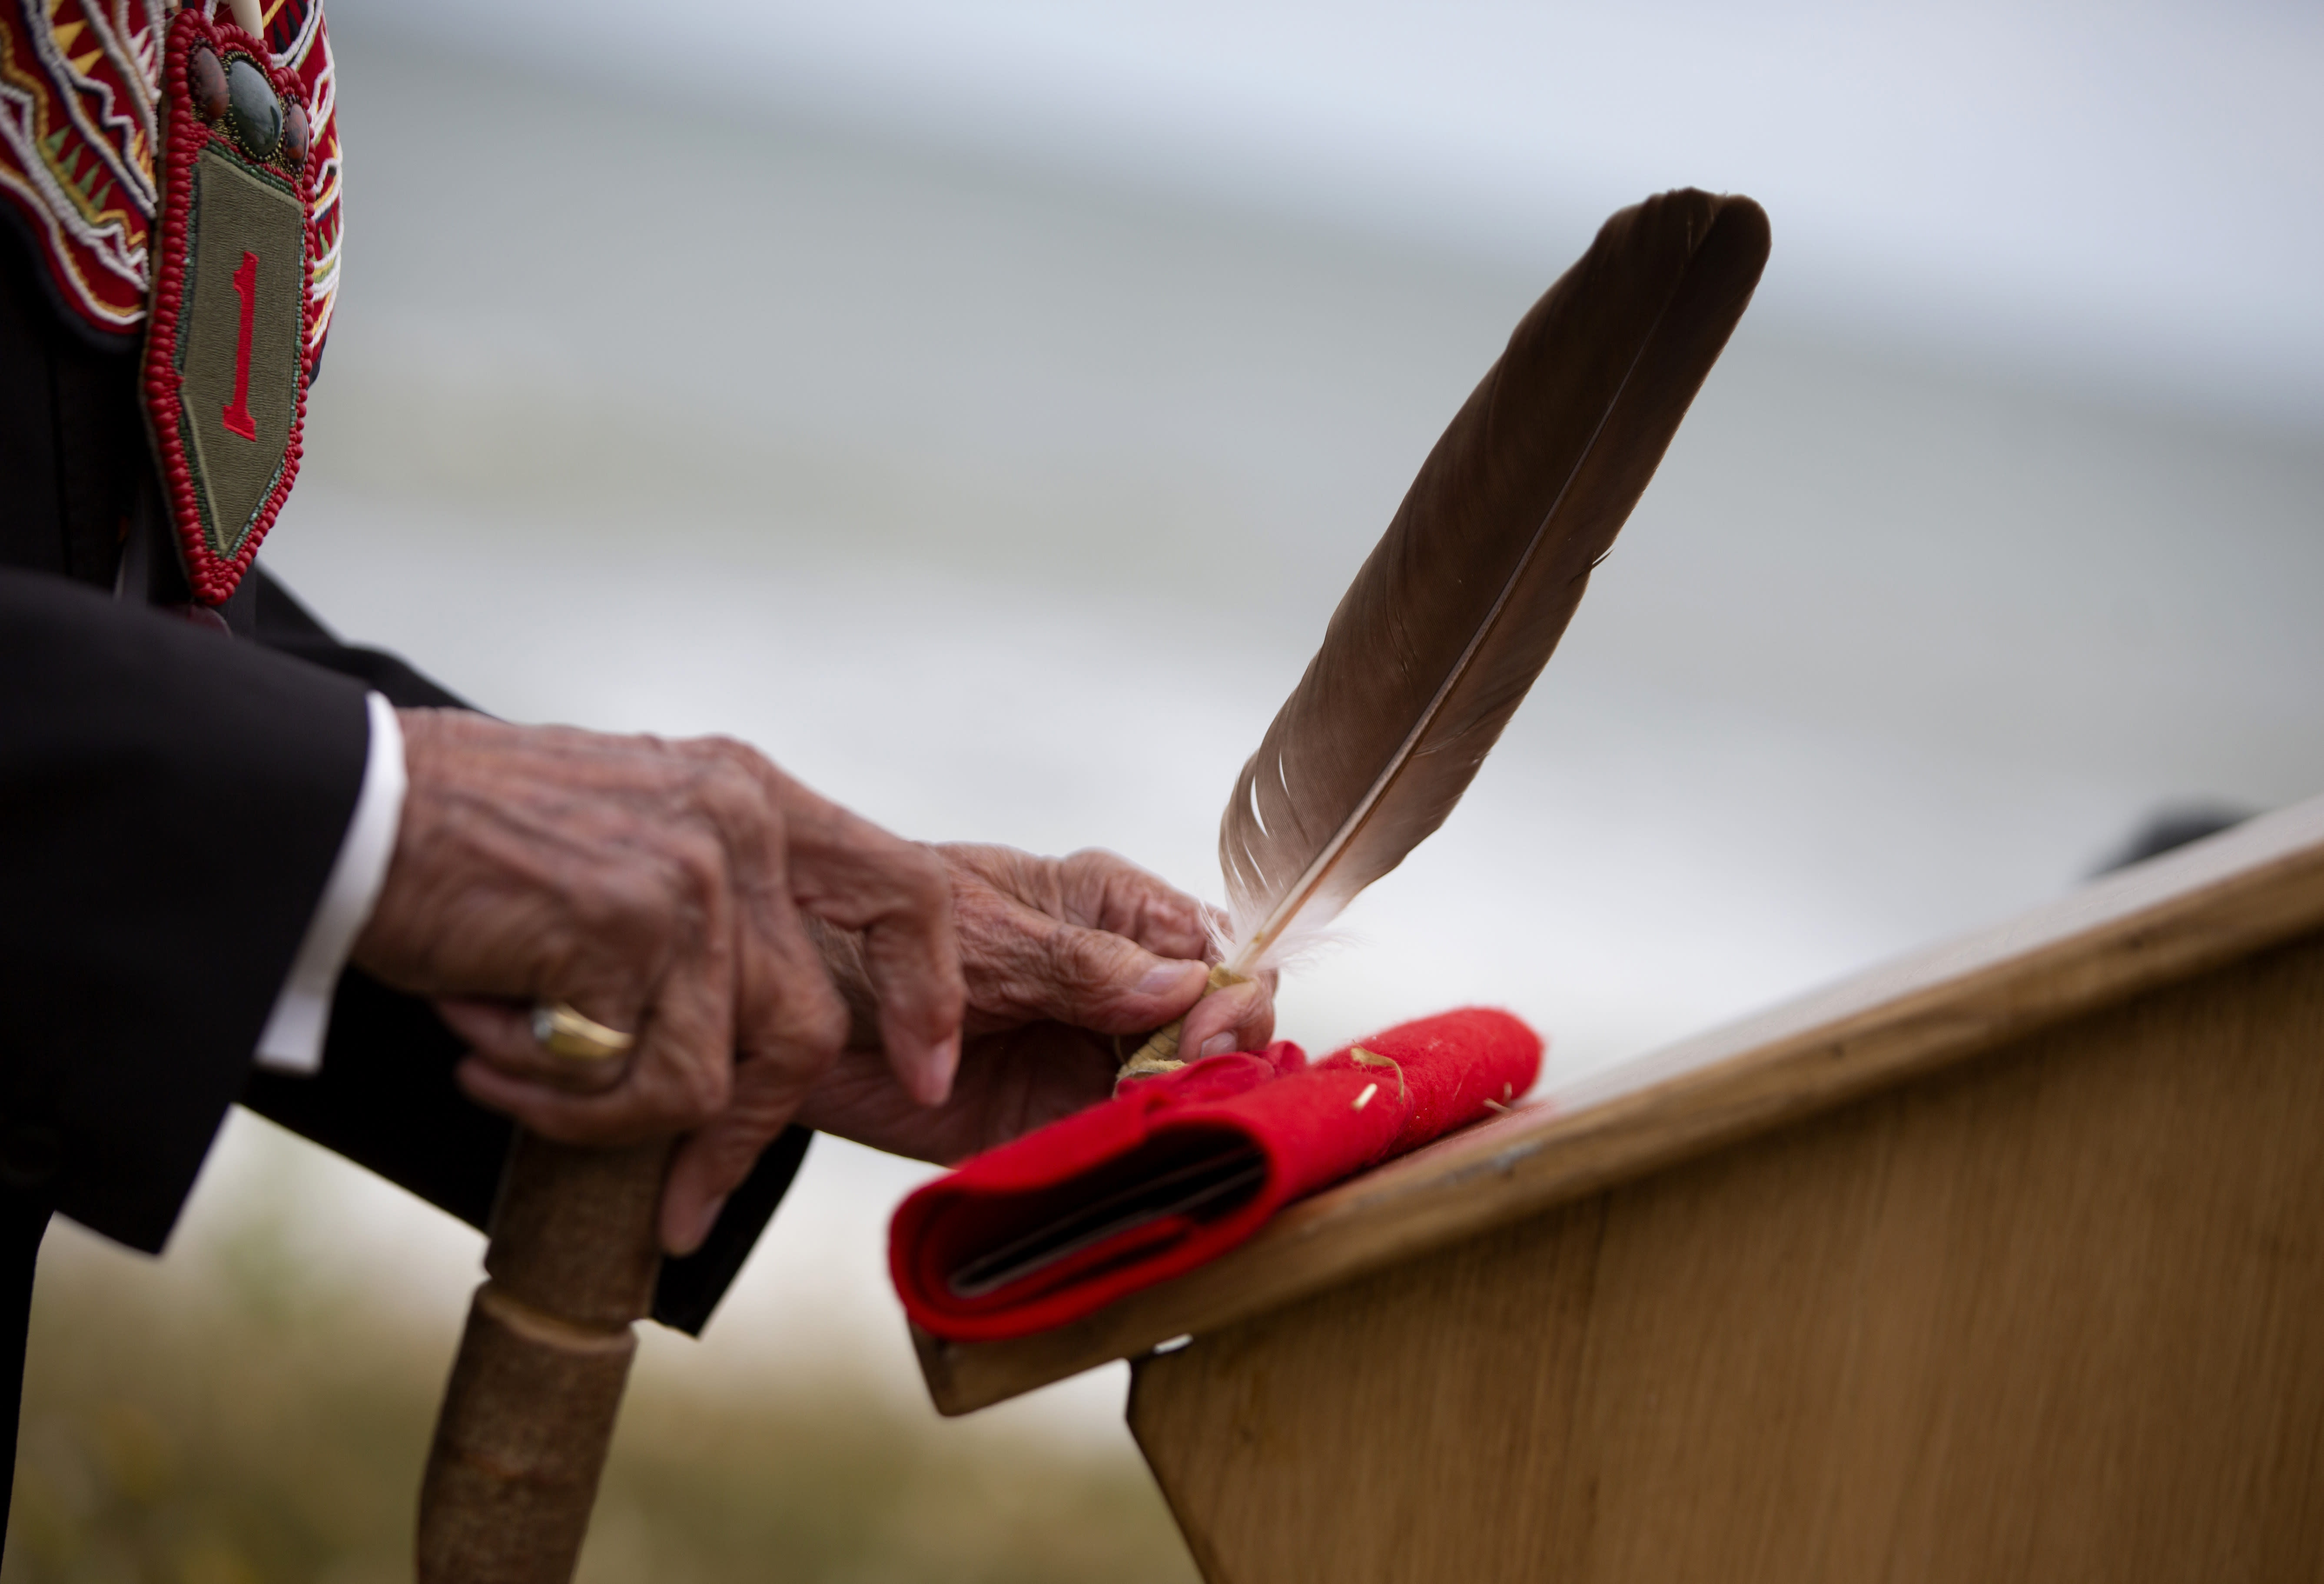 World War II D-Day veteran and Penobscot Elder from Maine, Charles Norman Shay participates in a Native American ceremony at his memorial overlooking Omaha Beach in Saint-Laurent-sur-Mer, Normandy, France, Friday, June 5, 2020. Saturday's anniversary of D-Day will be one of the loneliest remembrances ever, as the coronavirus pandemic is keeping almost everyone away, from government leaders to frail veterans who might not get another chance for a final farewell to their unlucky comrades. (AP Photo/Virginia Mayo)